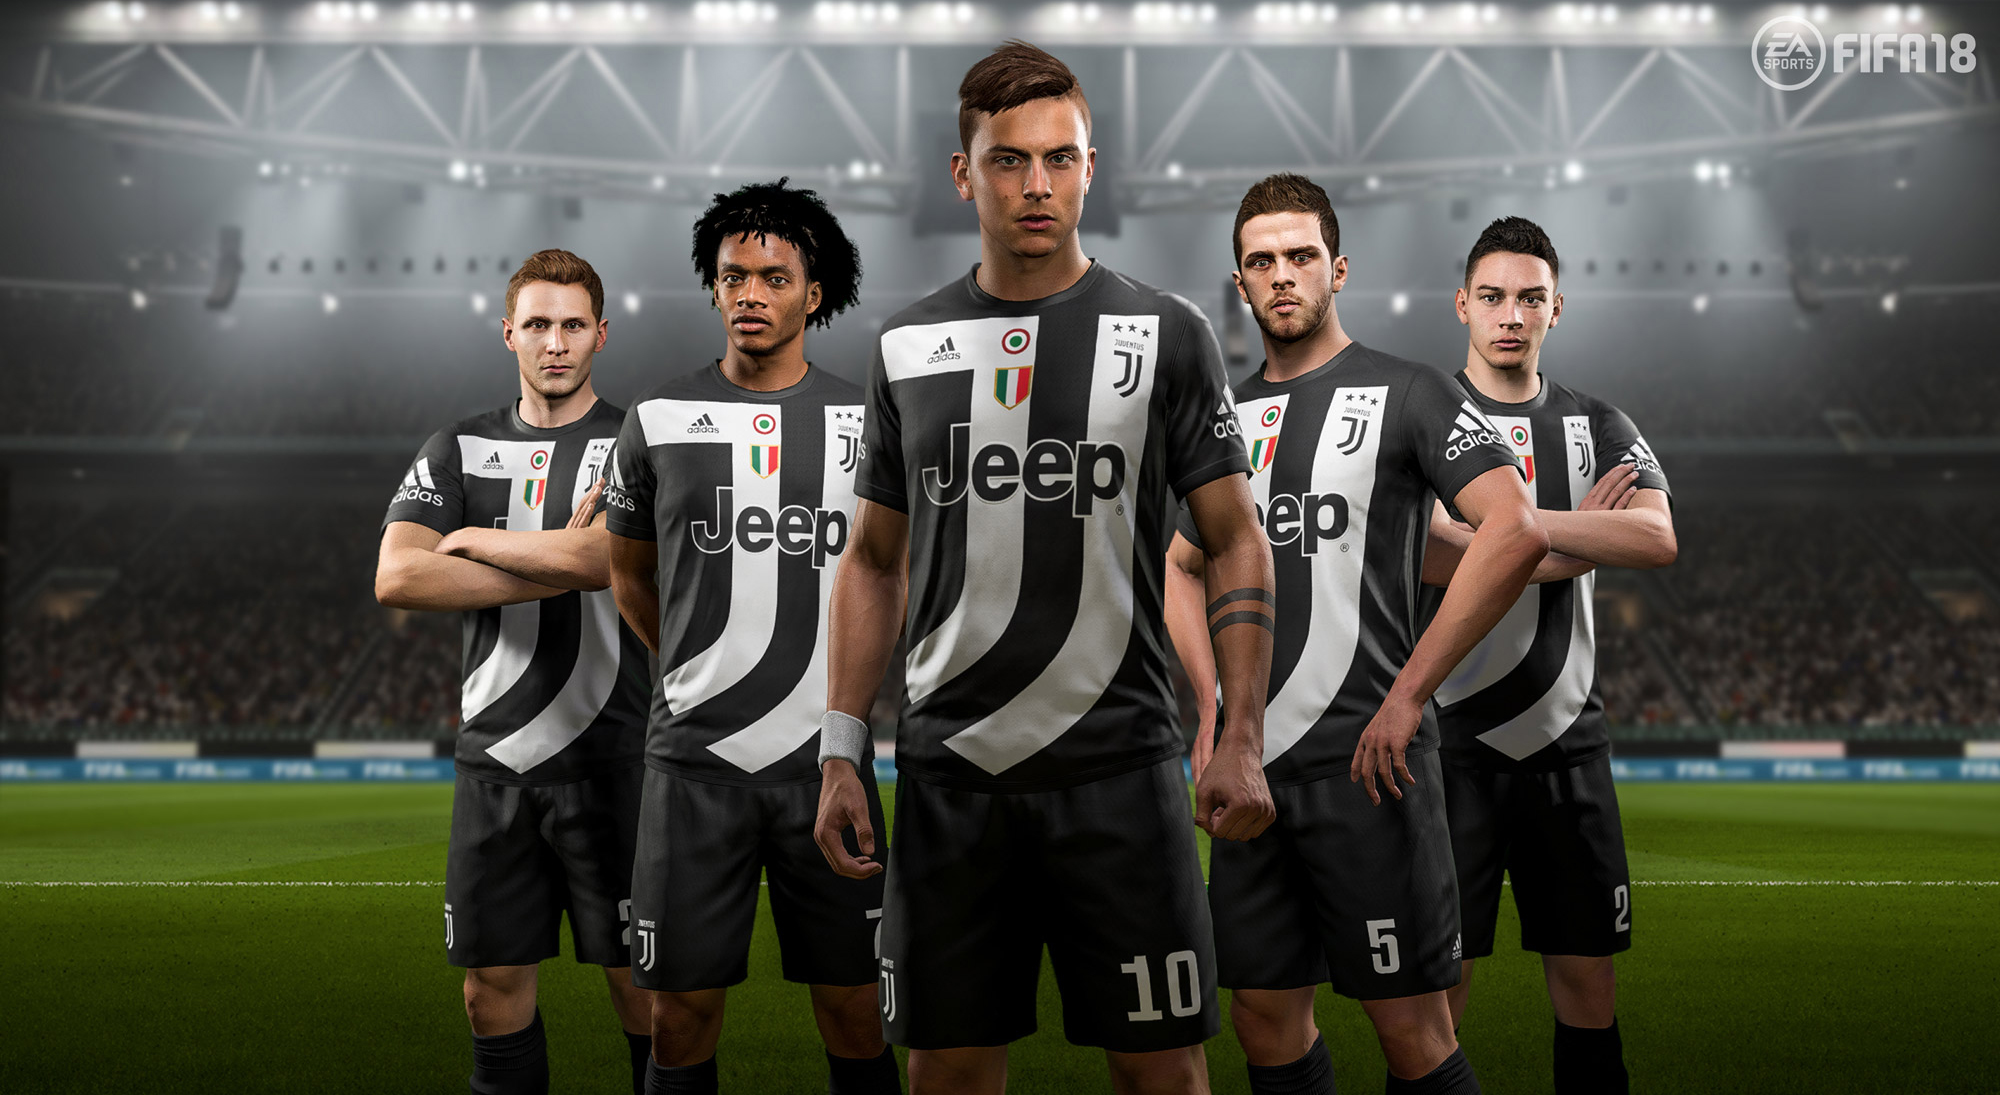 JUVE_DIGITAL_4TH_kITS_DEC_4-3